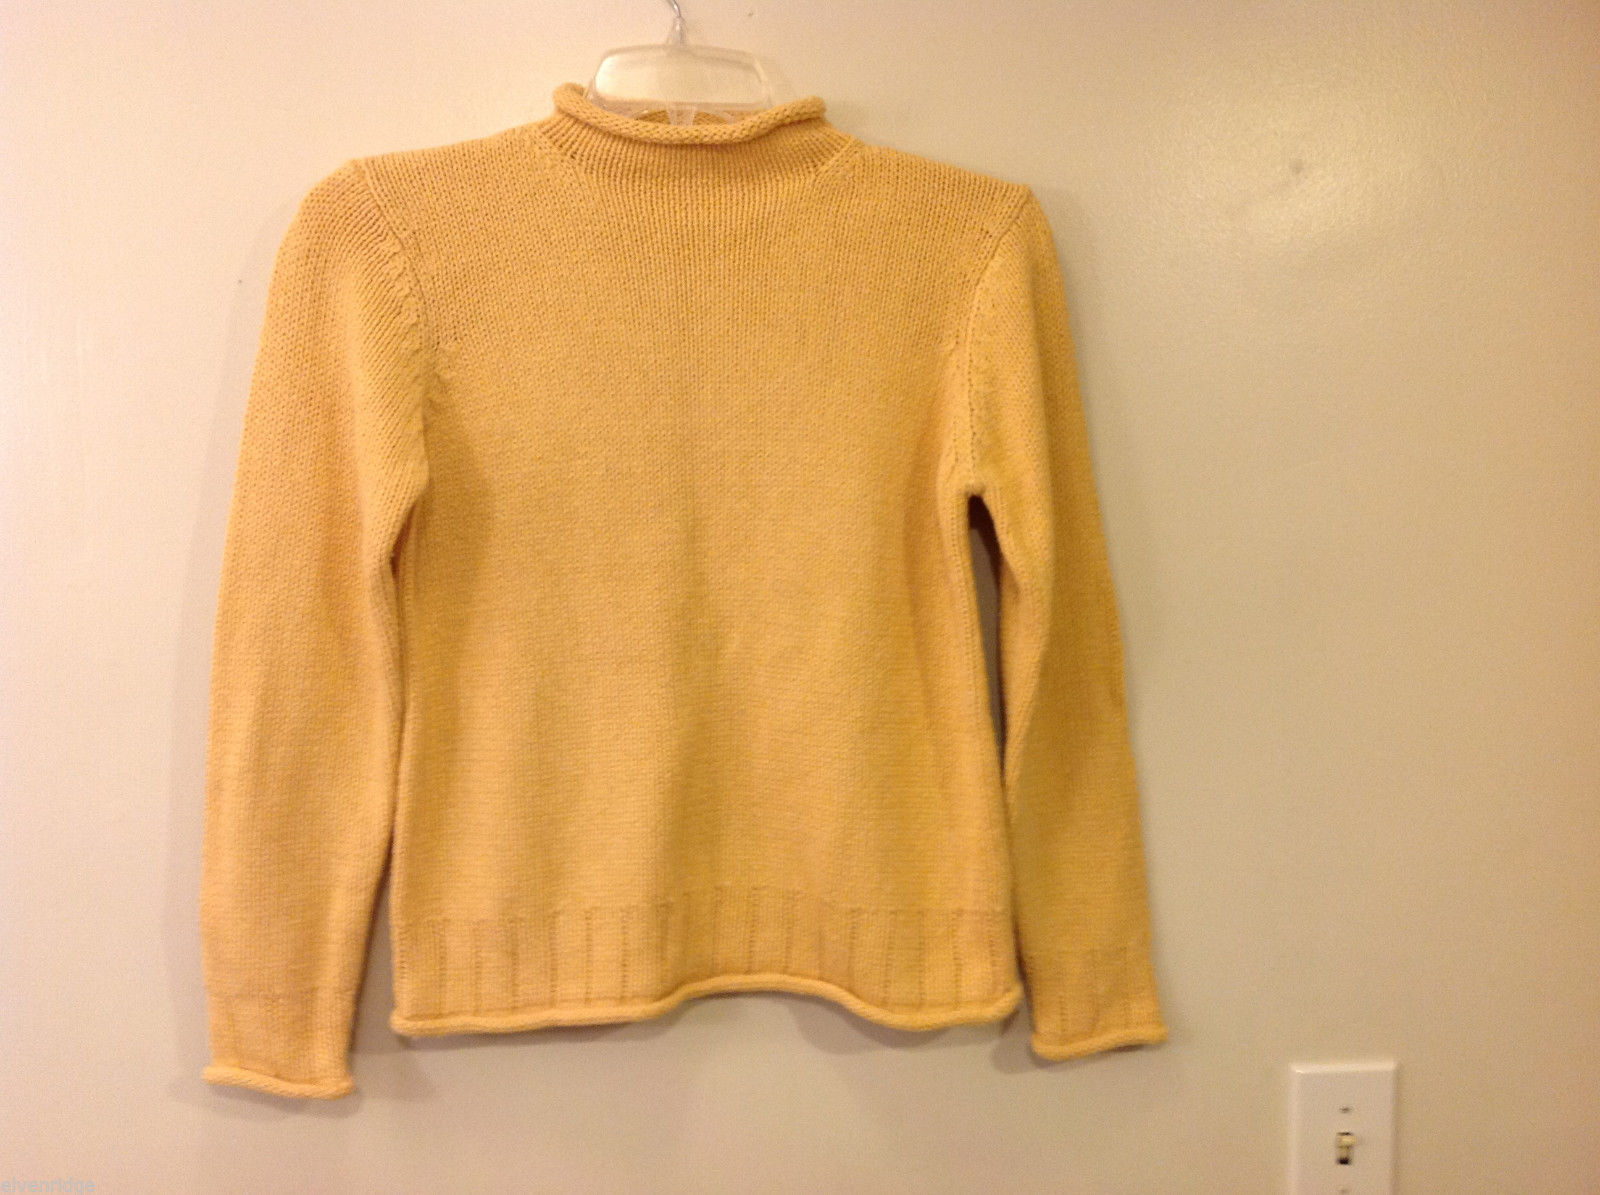 L.L. Bean Women's Size S Mock Neck Sweater Heavy Knit Silk Blend Marigold Yellow